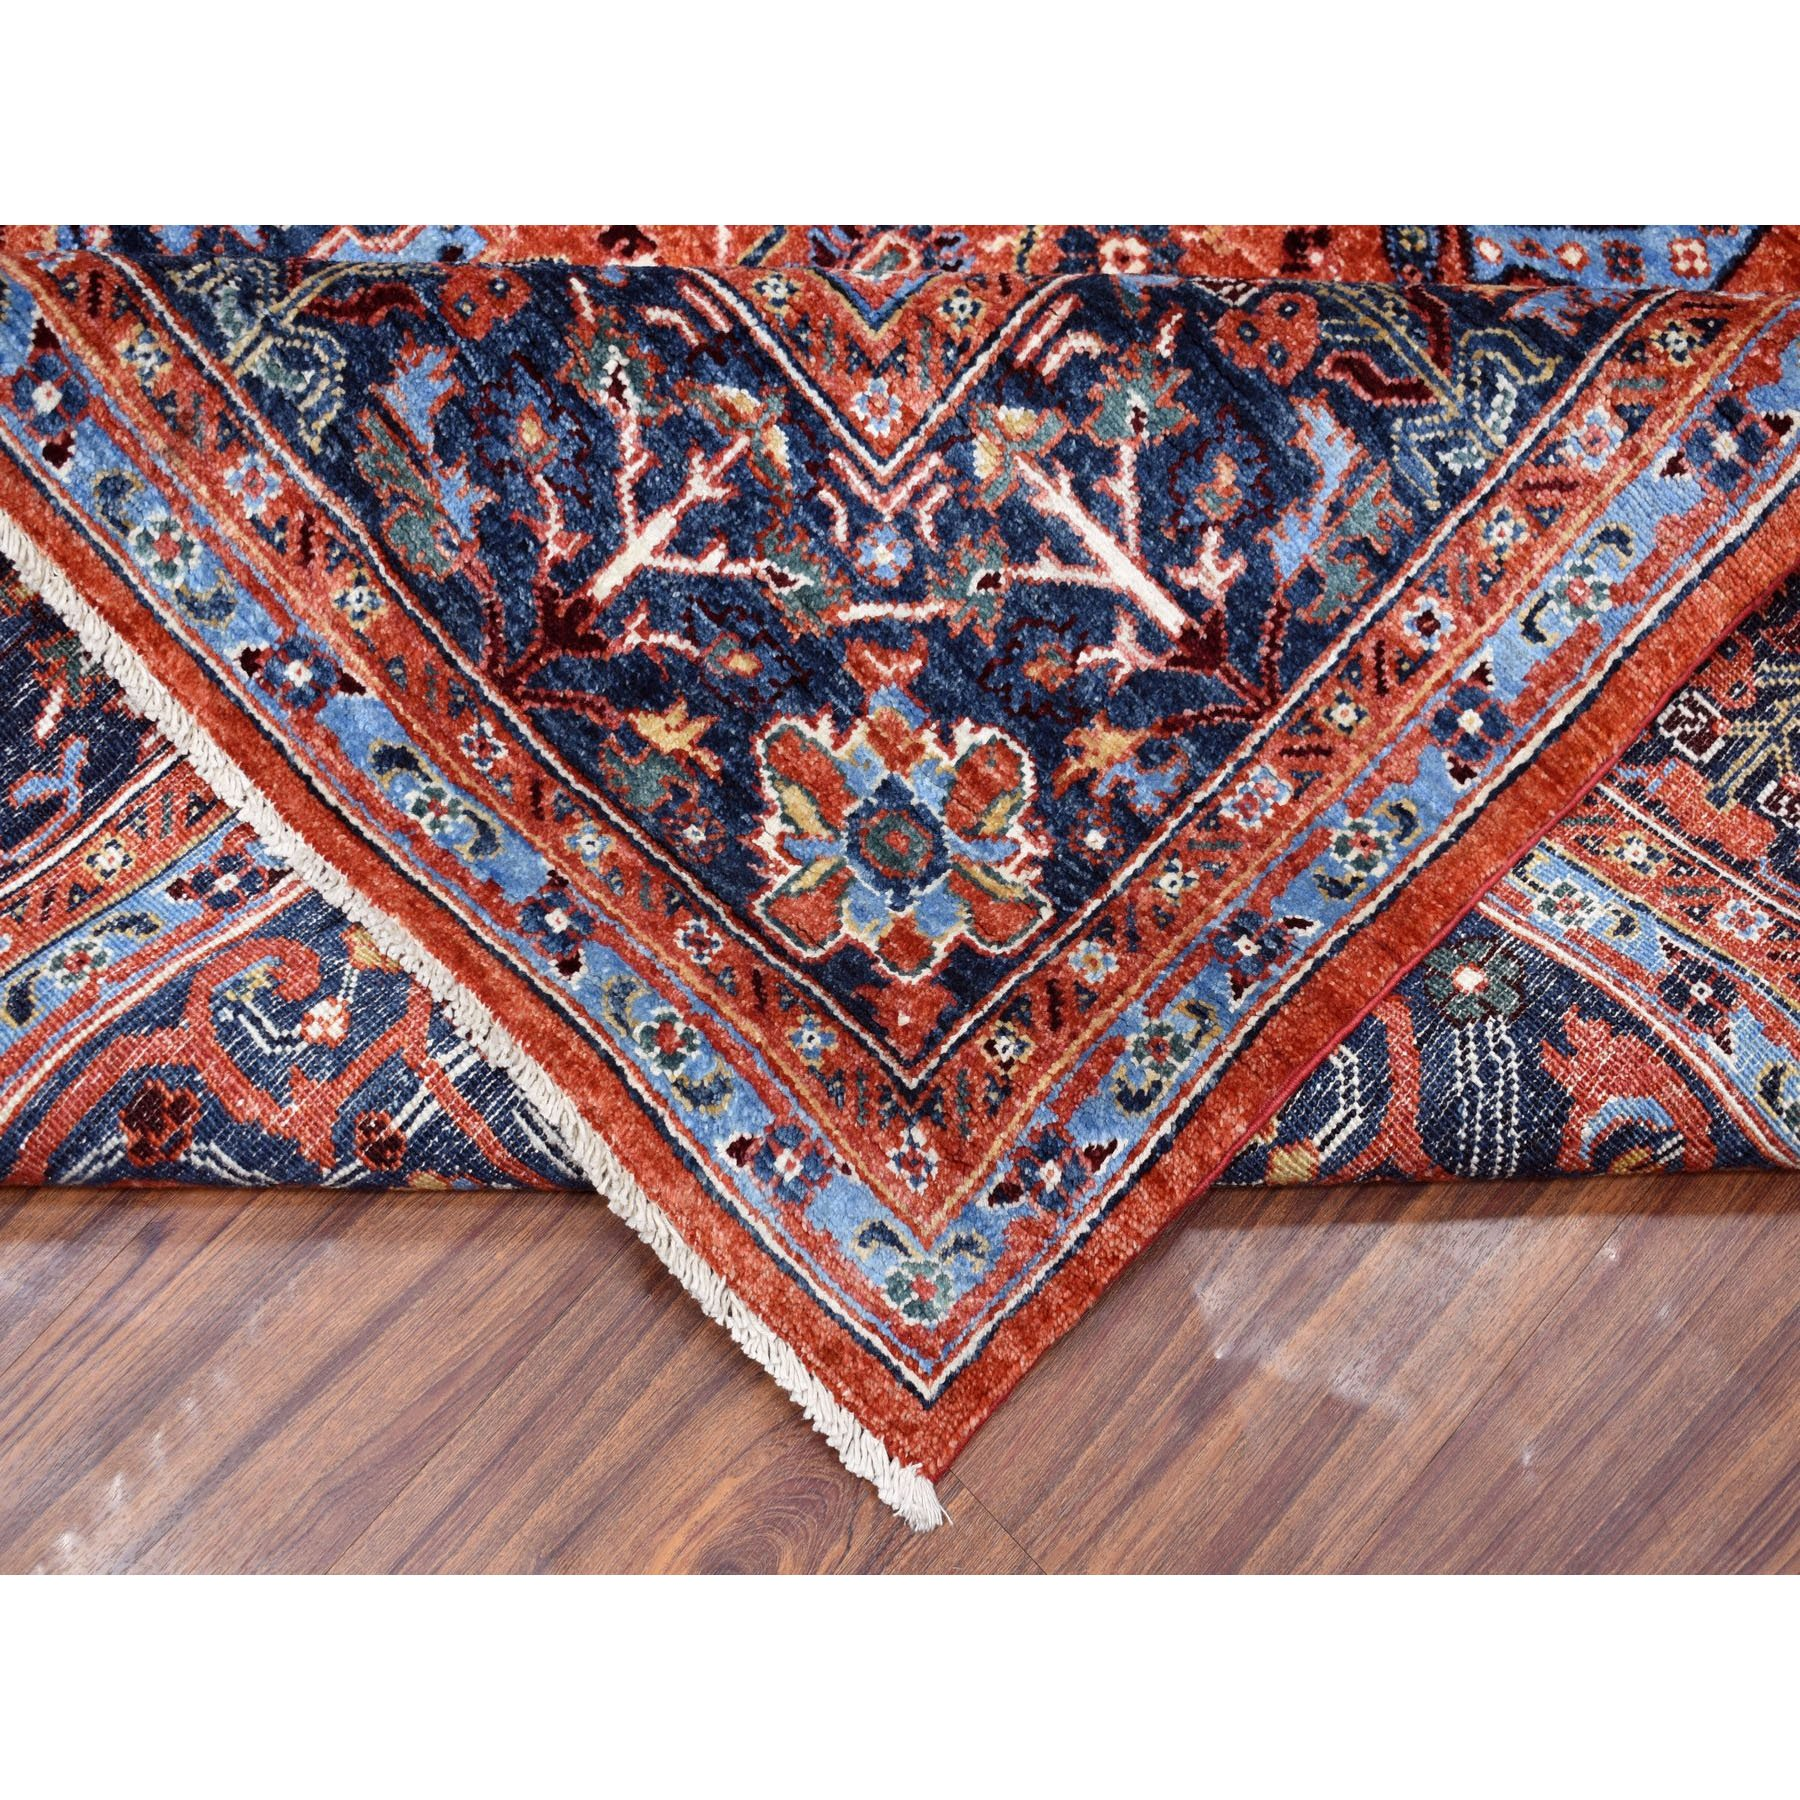 8'x10' Peshawar With Sarouk Fereghan Design Hand Knotted Pure Wool Oriental Rug